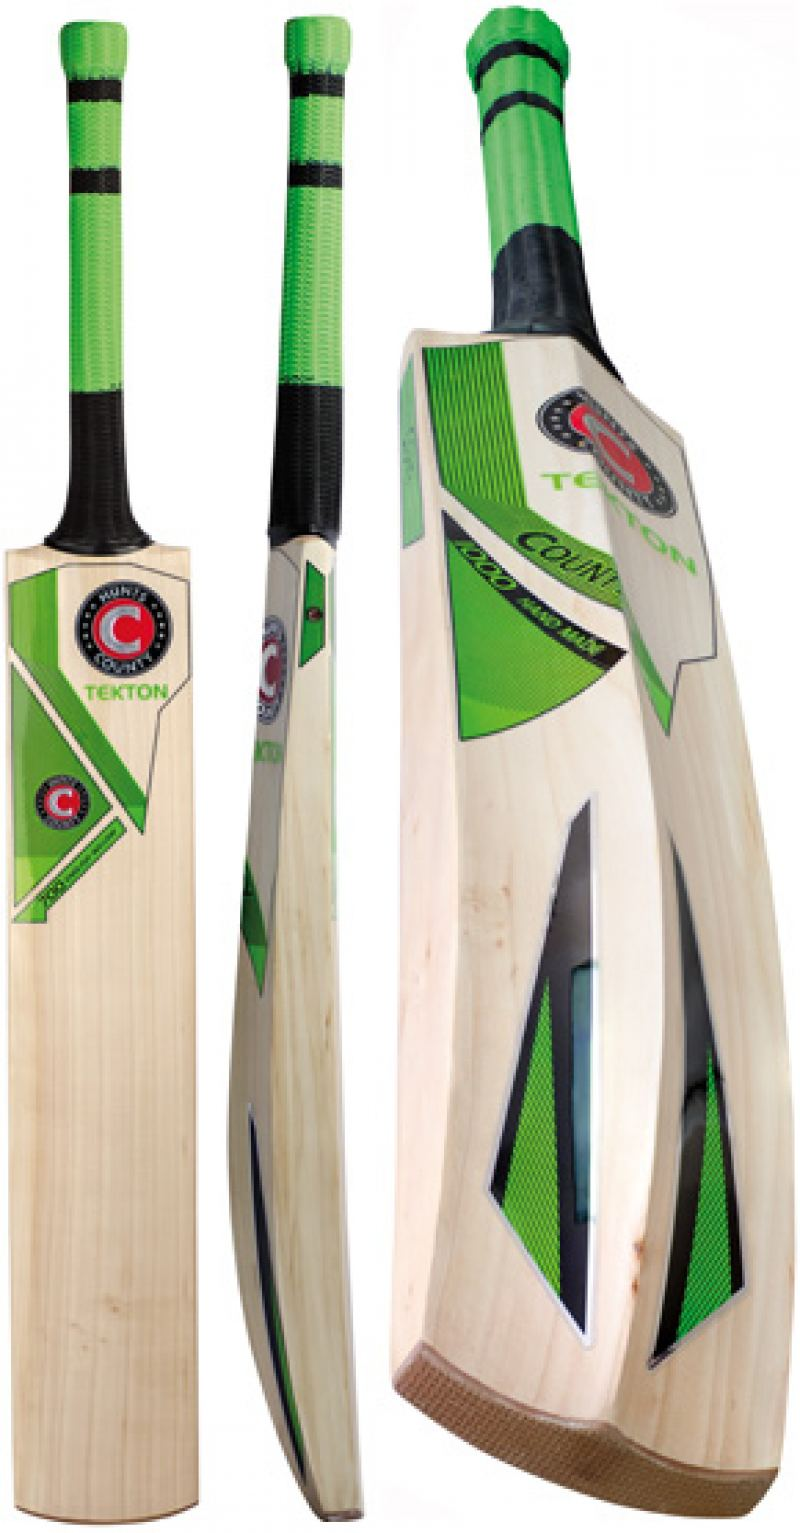 Hunts County Tekton 600 Cricket Bat